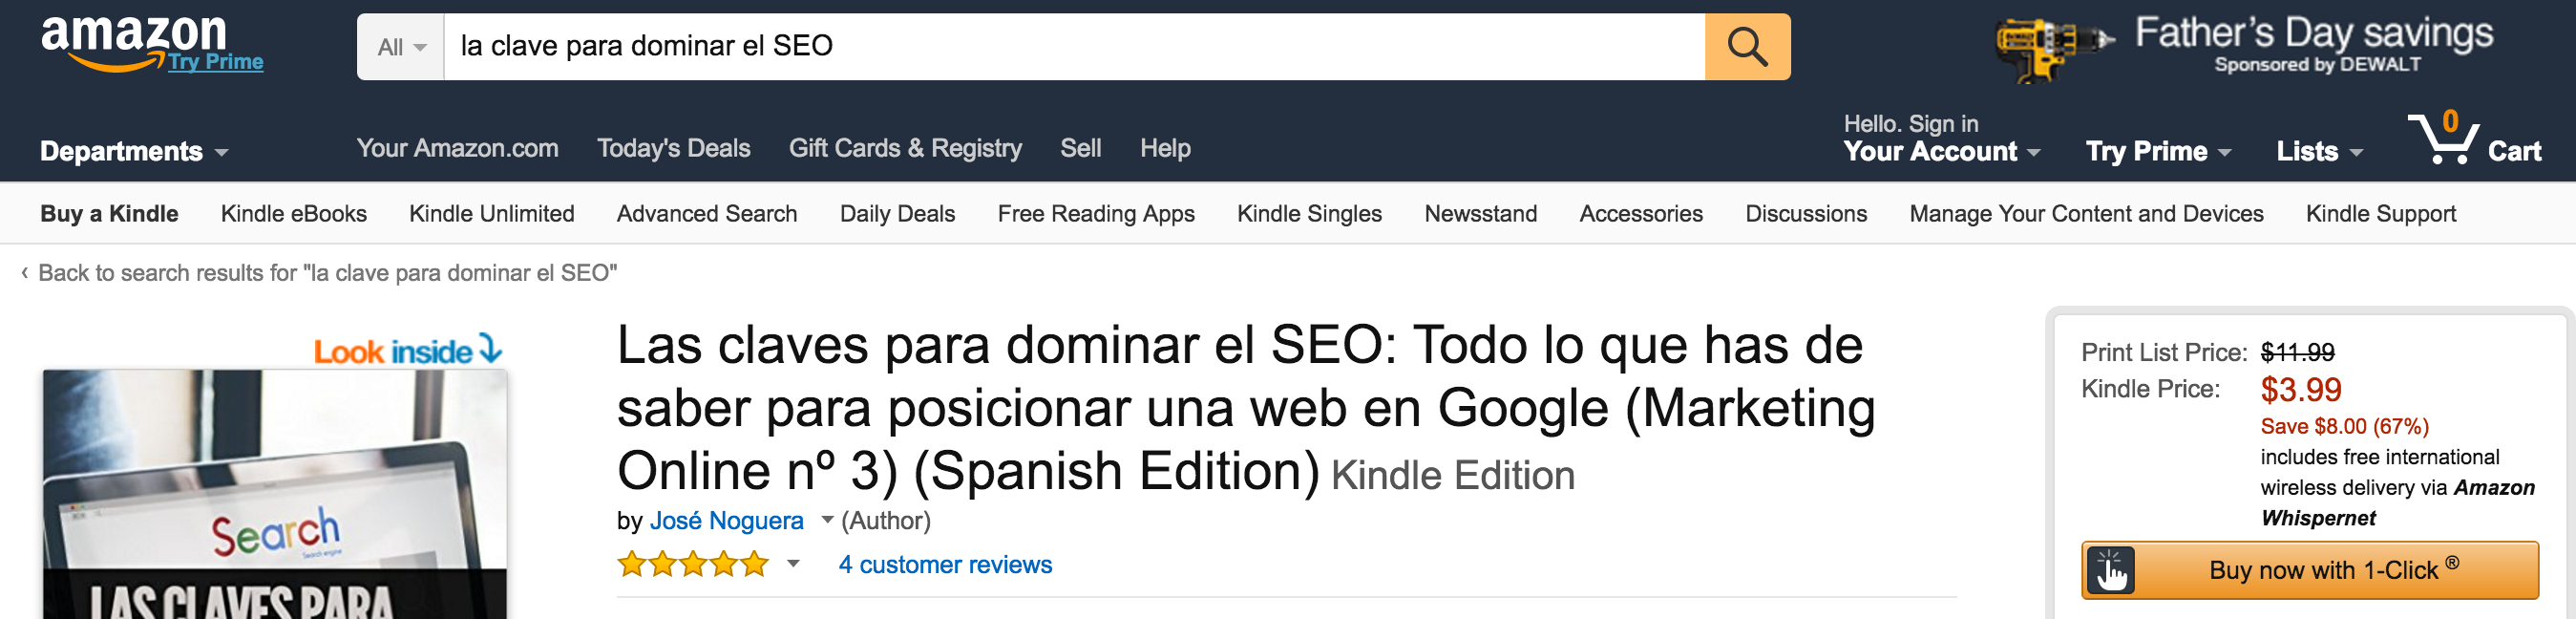 Amazon.com Las claves para dominar el SEO Todo lo que has de saber para posicionar una web en Google Marketing Online nº 3 Spanish Edition eBook José Noguera Kindle Store